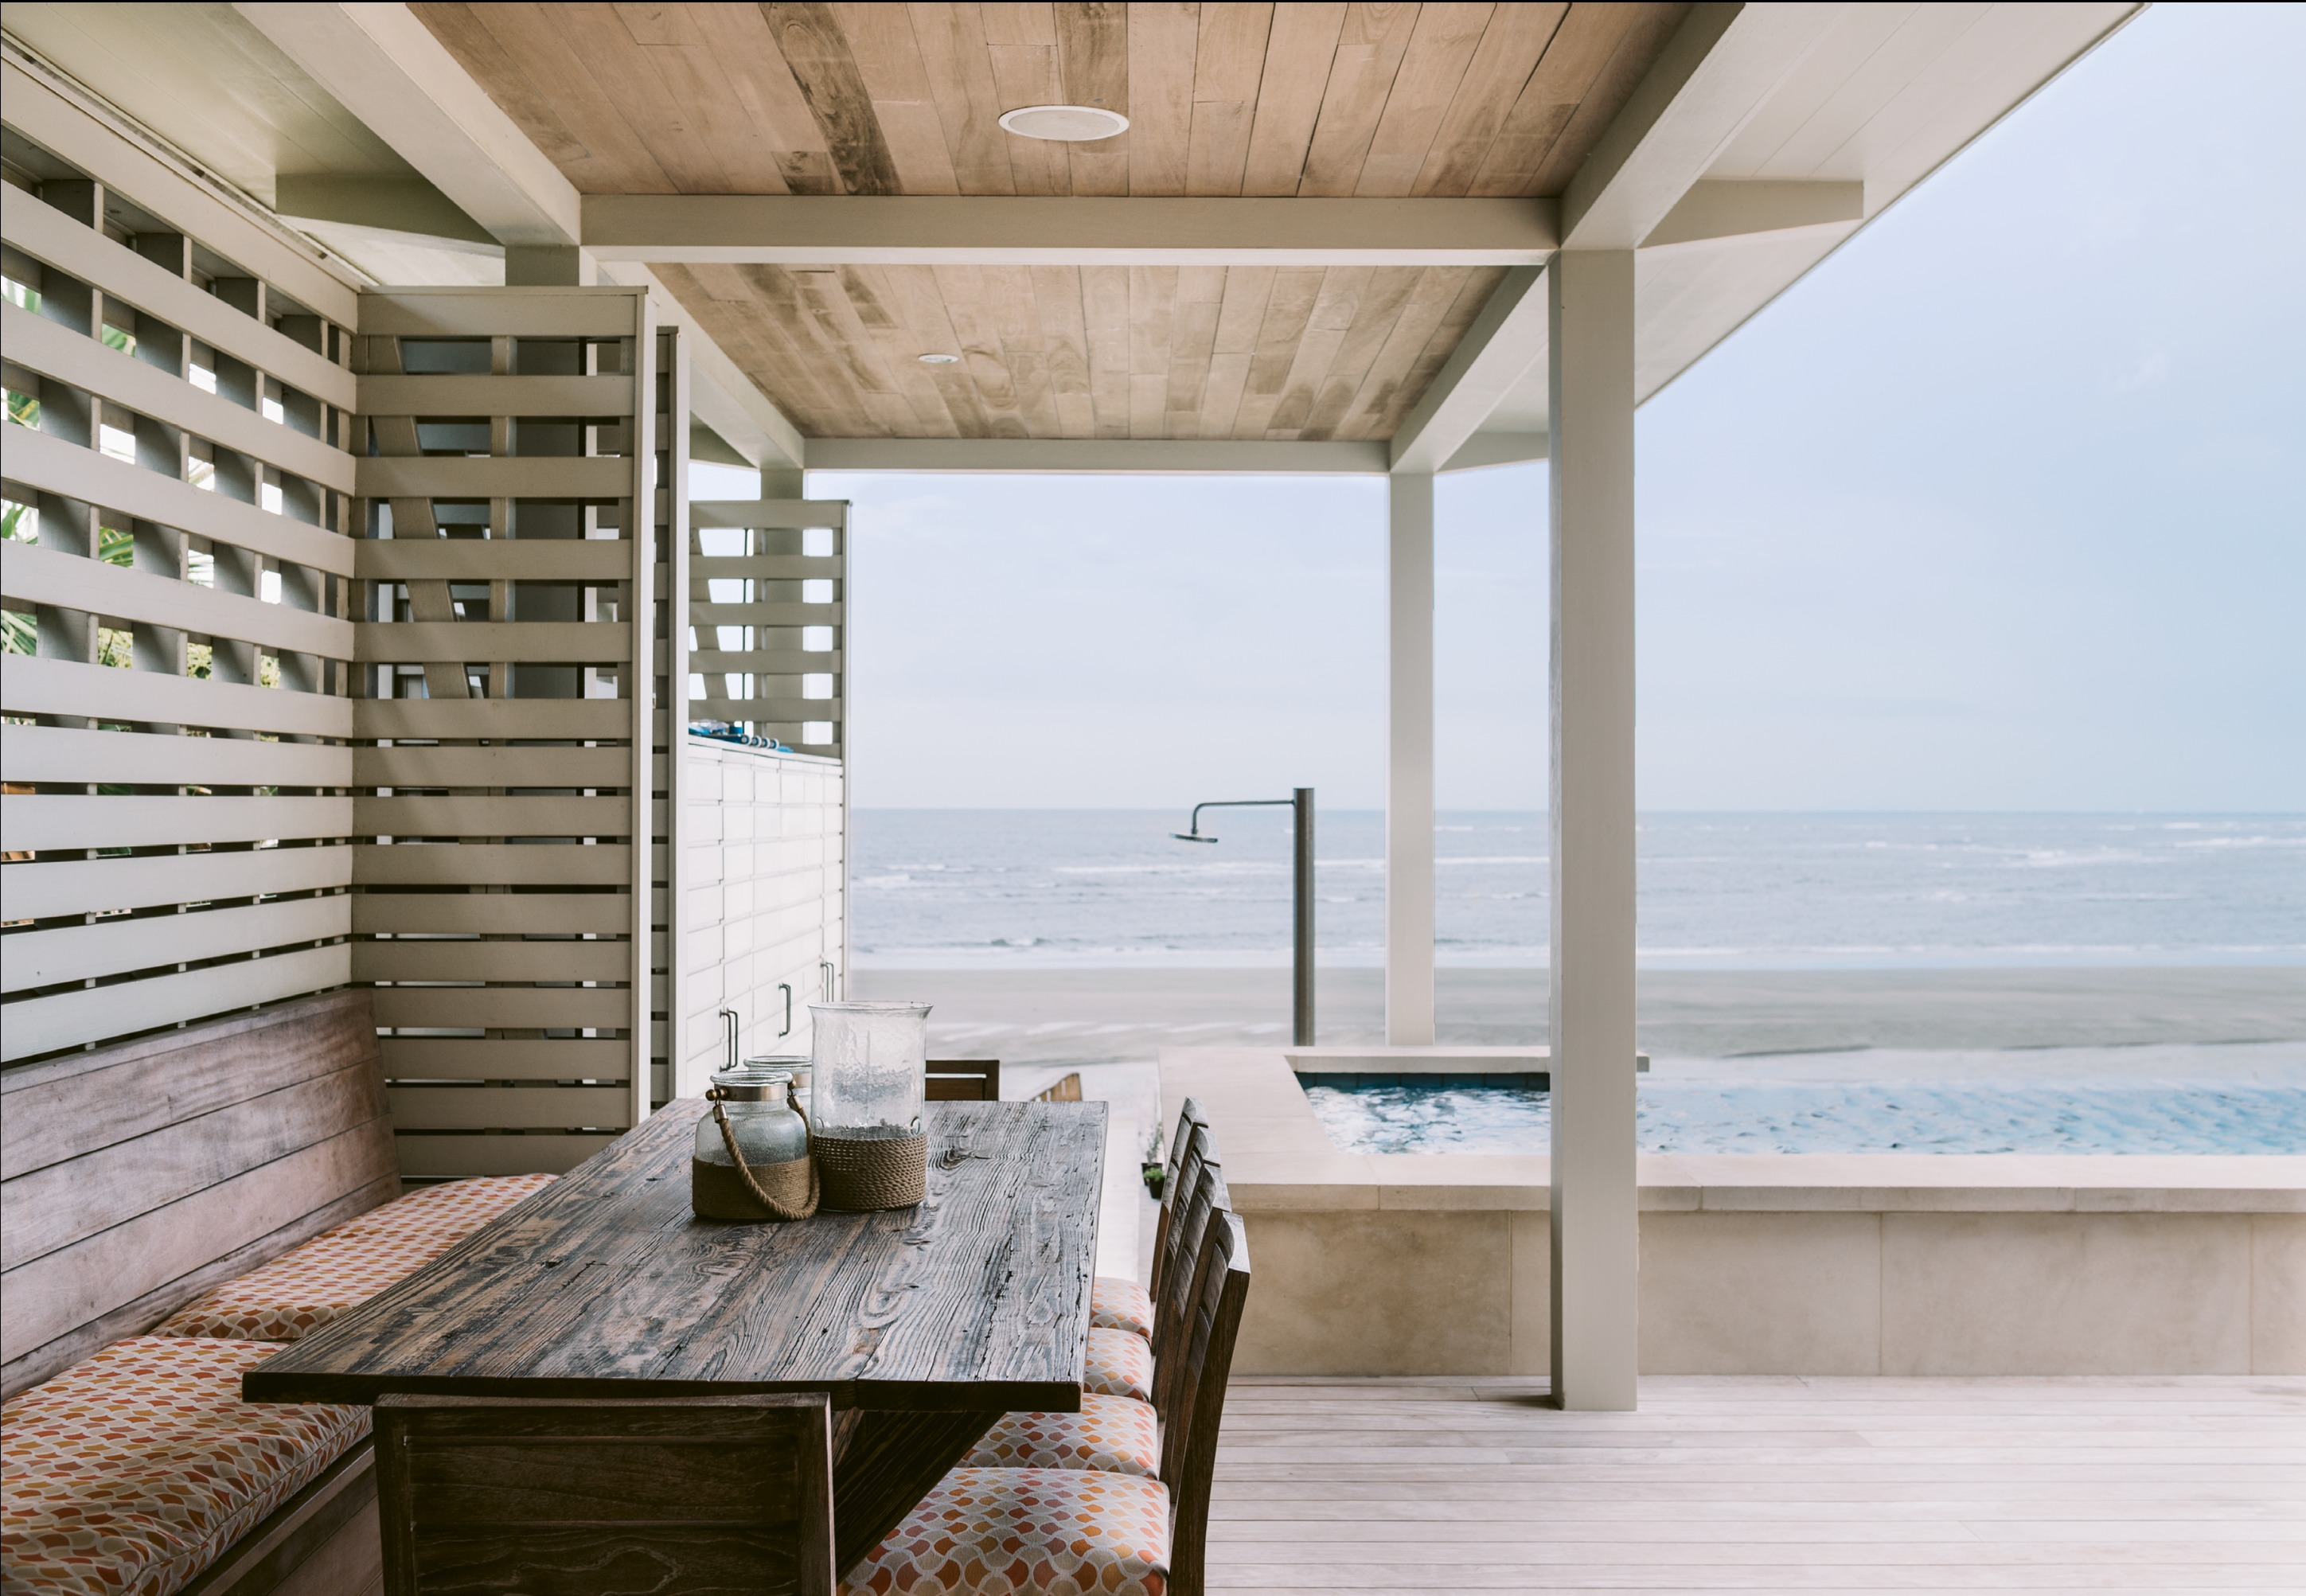 """On the elevated courtyard, a slatted wall serves as a privacy screen while allowing breezes to flow through. """"We eat out there as much as possible,"""" says Suzanne of the outdoor dining area with a large reclaimed wood table crafted by Landrum Tables. """"We can enjoy a glass of wine while the kids are swimming."""""""